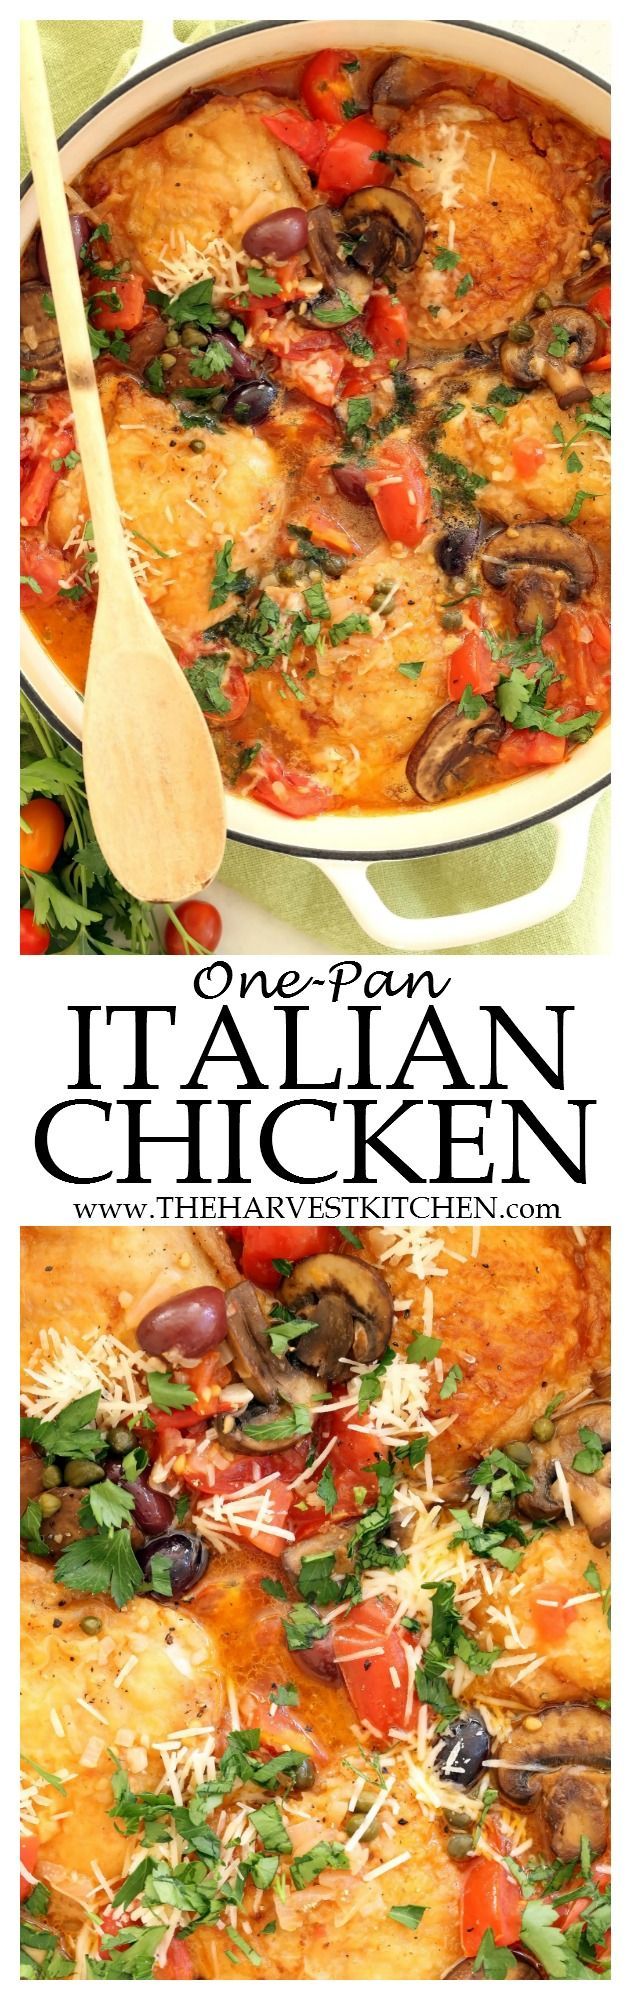 This One Pan Italian Chicken is an easy Dutch oven chicken recipe that's bursting with bright, hearty Italian flavors. It's easy enough to make any night of the week, yet elegant enough to serve guests for dinner. It will become one of your favorite chicken recipes that you'll make over and over again. | Dutch oven recipes | | easy chicken recipes | | clean eating | | healthy eating | | skinny chicken | | mediterranean chicken |